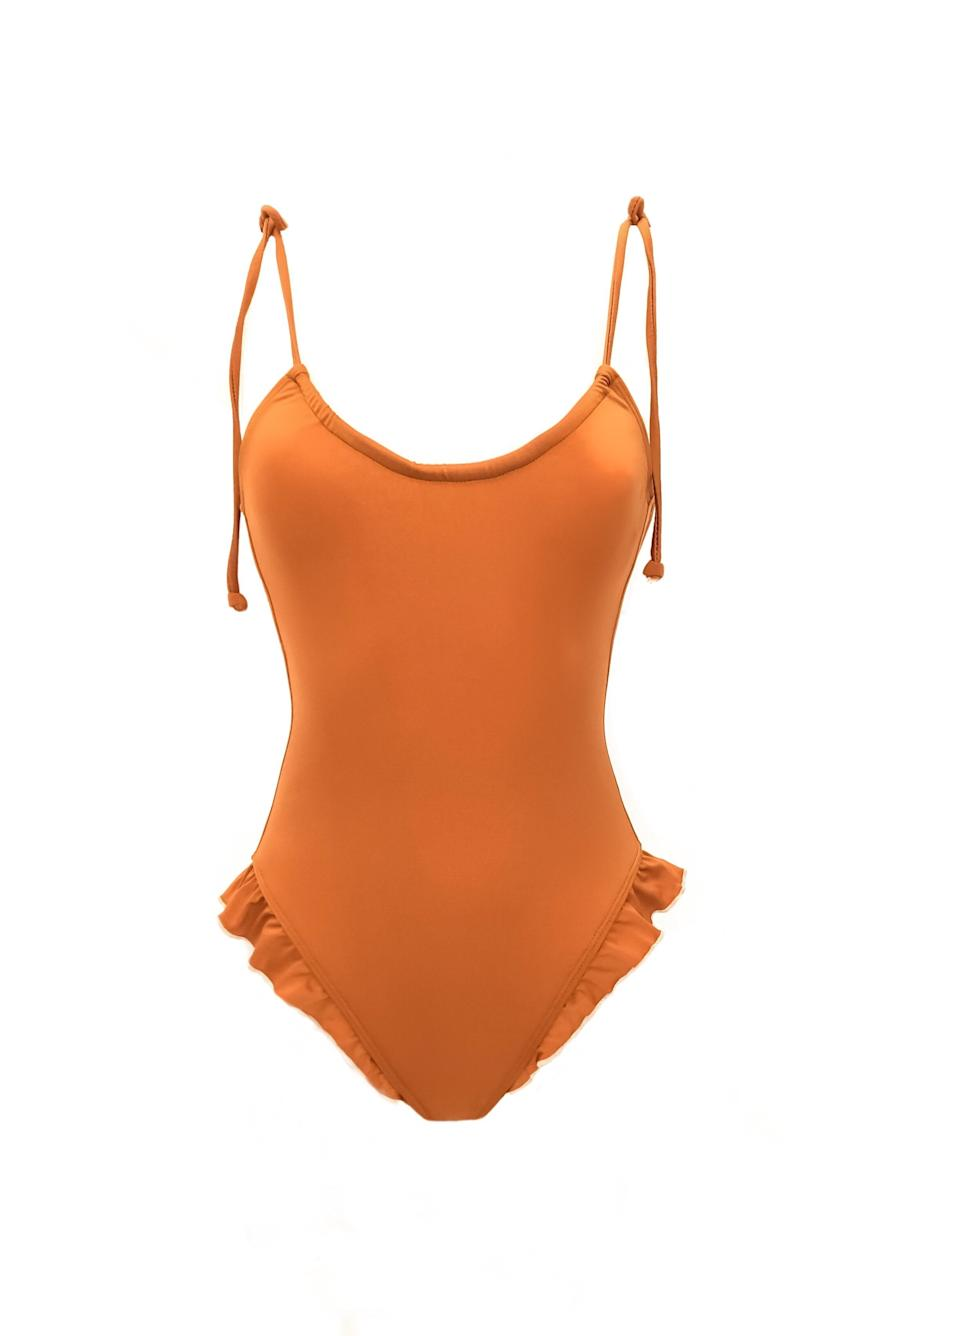 """<br><br><strong>Castamira</strong> Gia One-Piece, $, available at <a href=""""https://go.skimresources.com/?id=30283X879131&url=https%3A%2F%2Fwww.castamira.com%2Fcollections%2Fcollection-1%2Fproducts%2Fgia"""" rel=""""nofollow noopener"""" target=""""_blank"""" data-ylk=""""slk:Castamira"""" class=""""link rapid-noclick-resp"""">Castamira</a>"""